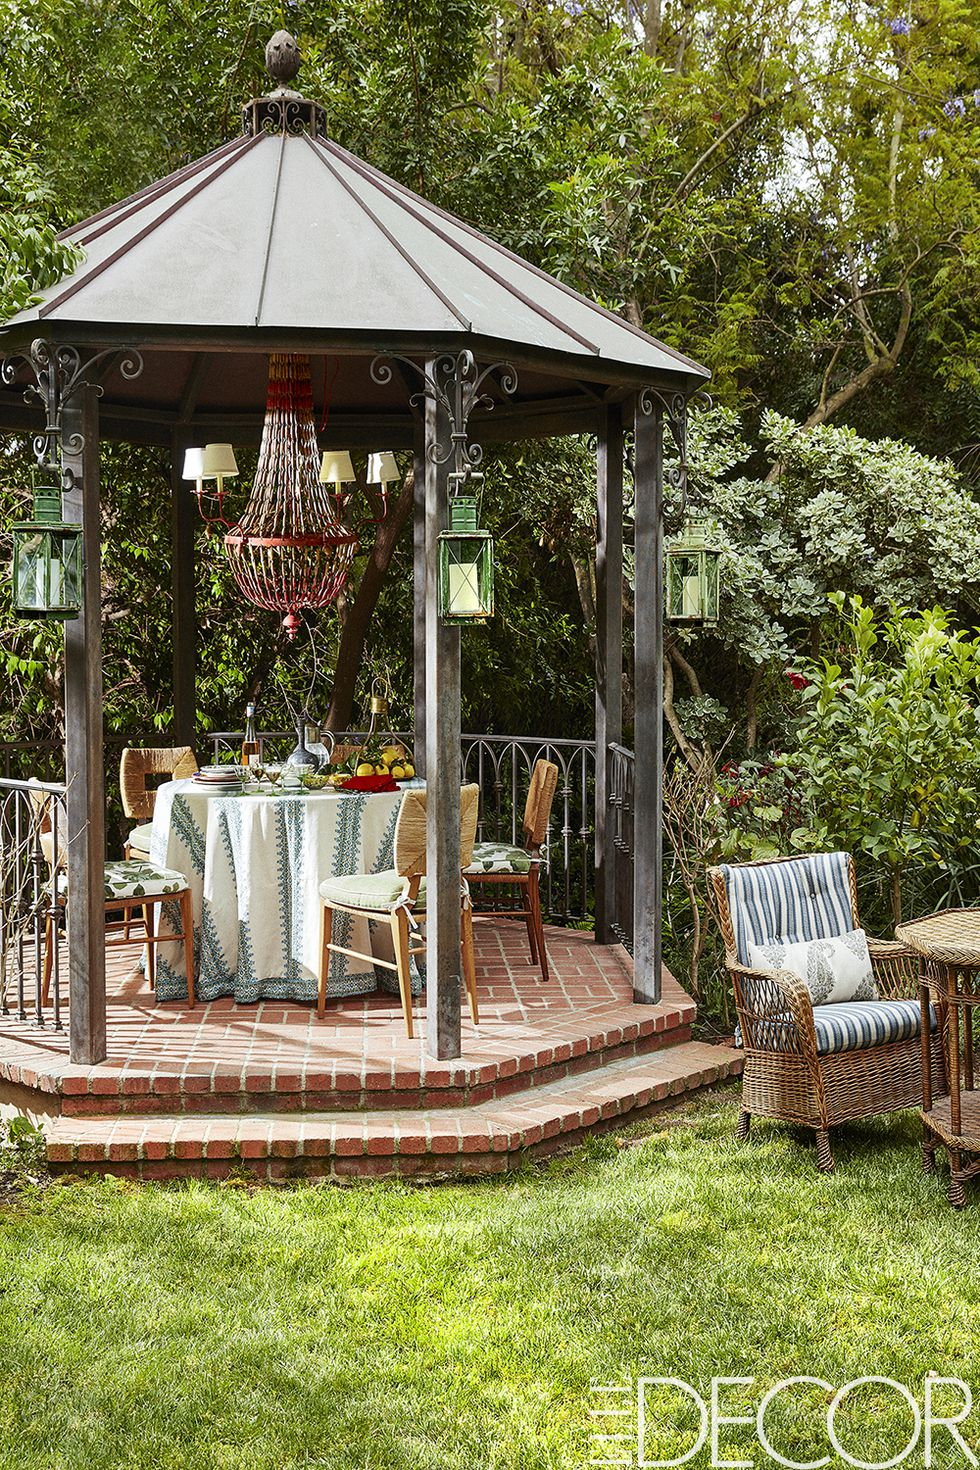 The gazebo's dining chairs, vintage French chandelier and lanterns are from   Hollywood at Home   ; the tablecloth and the chair cushions are of fabrics from   Peter Dunham Textiles   .